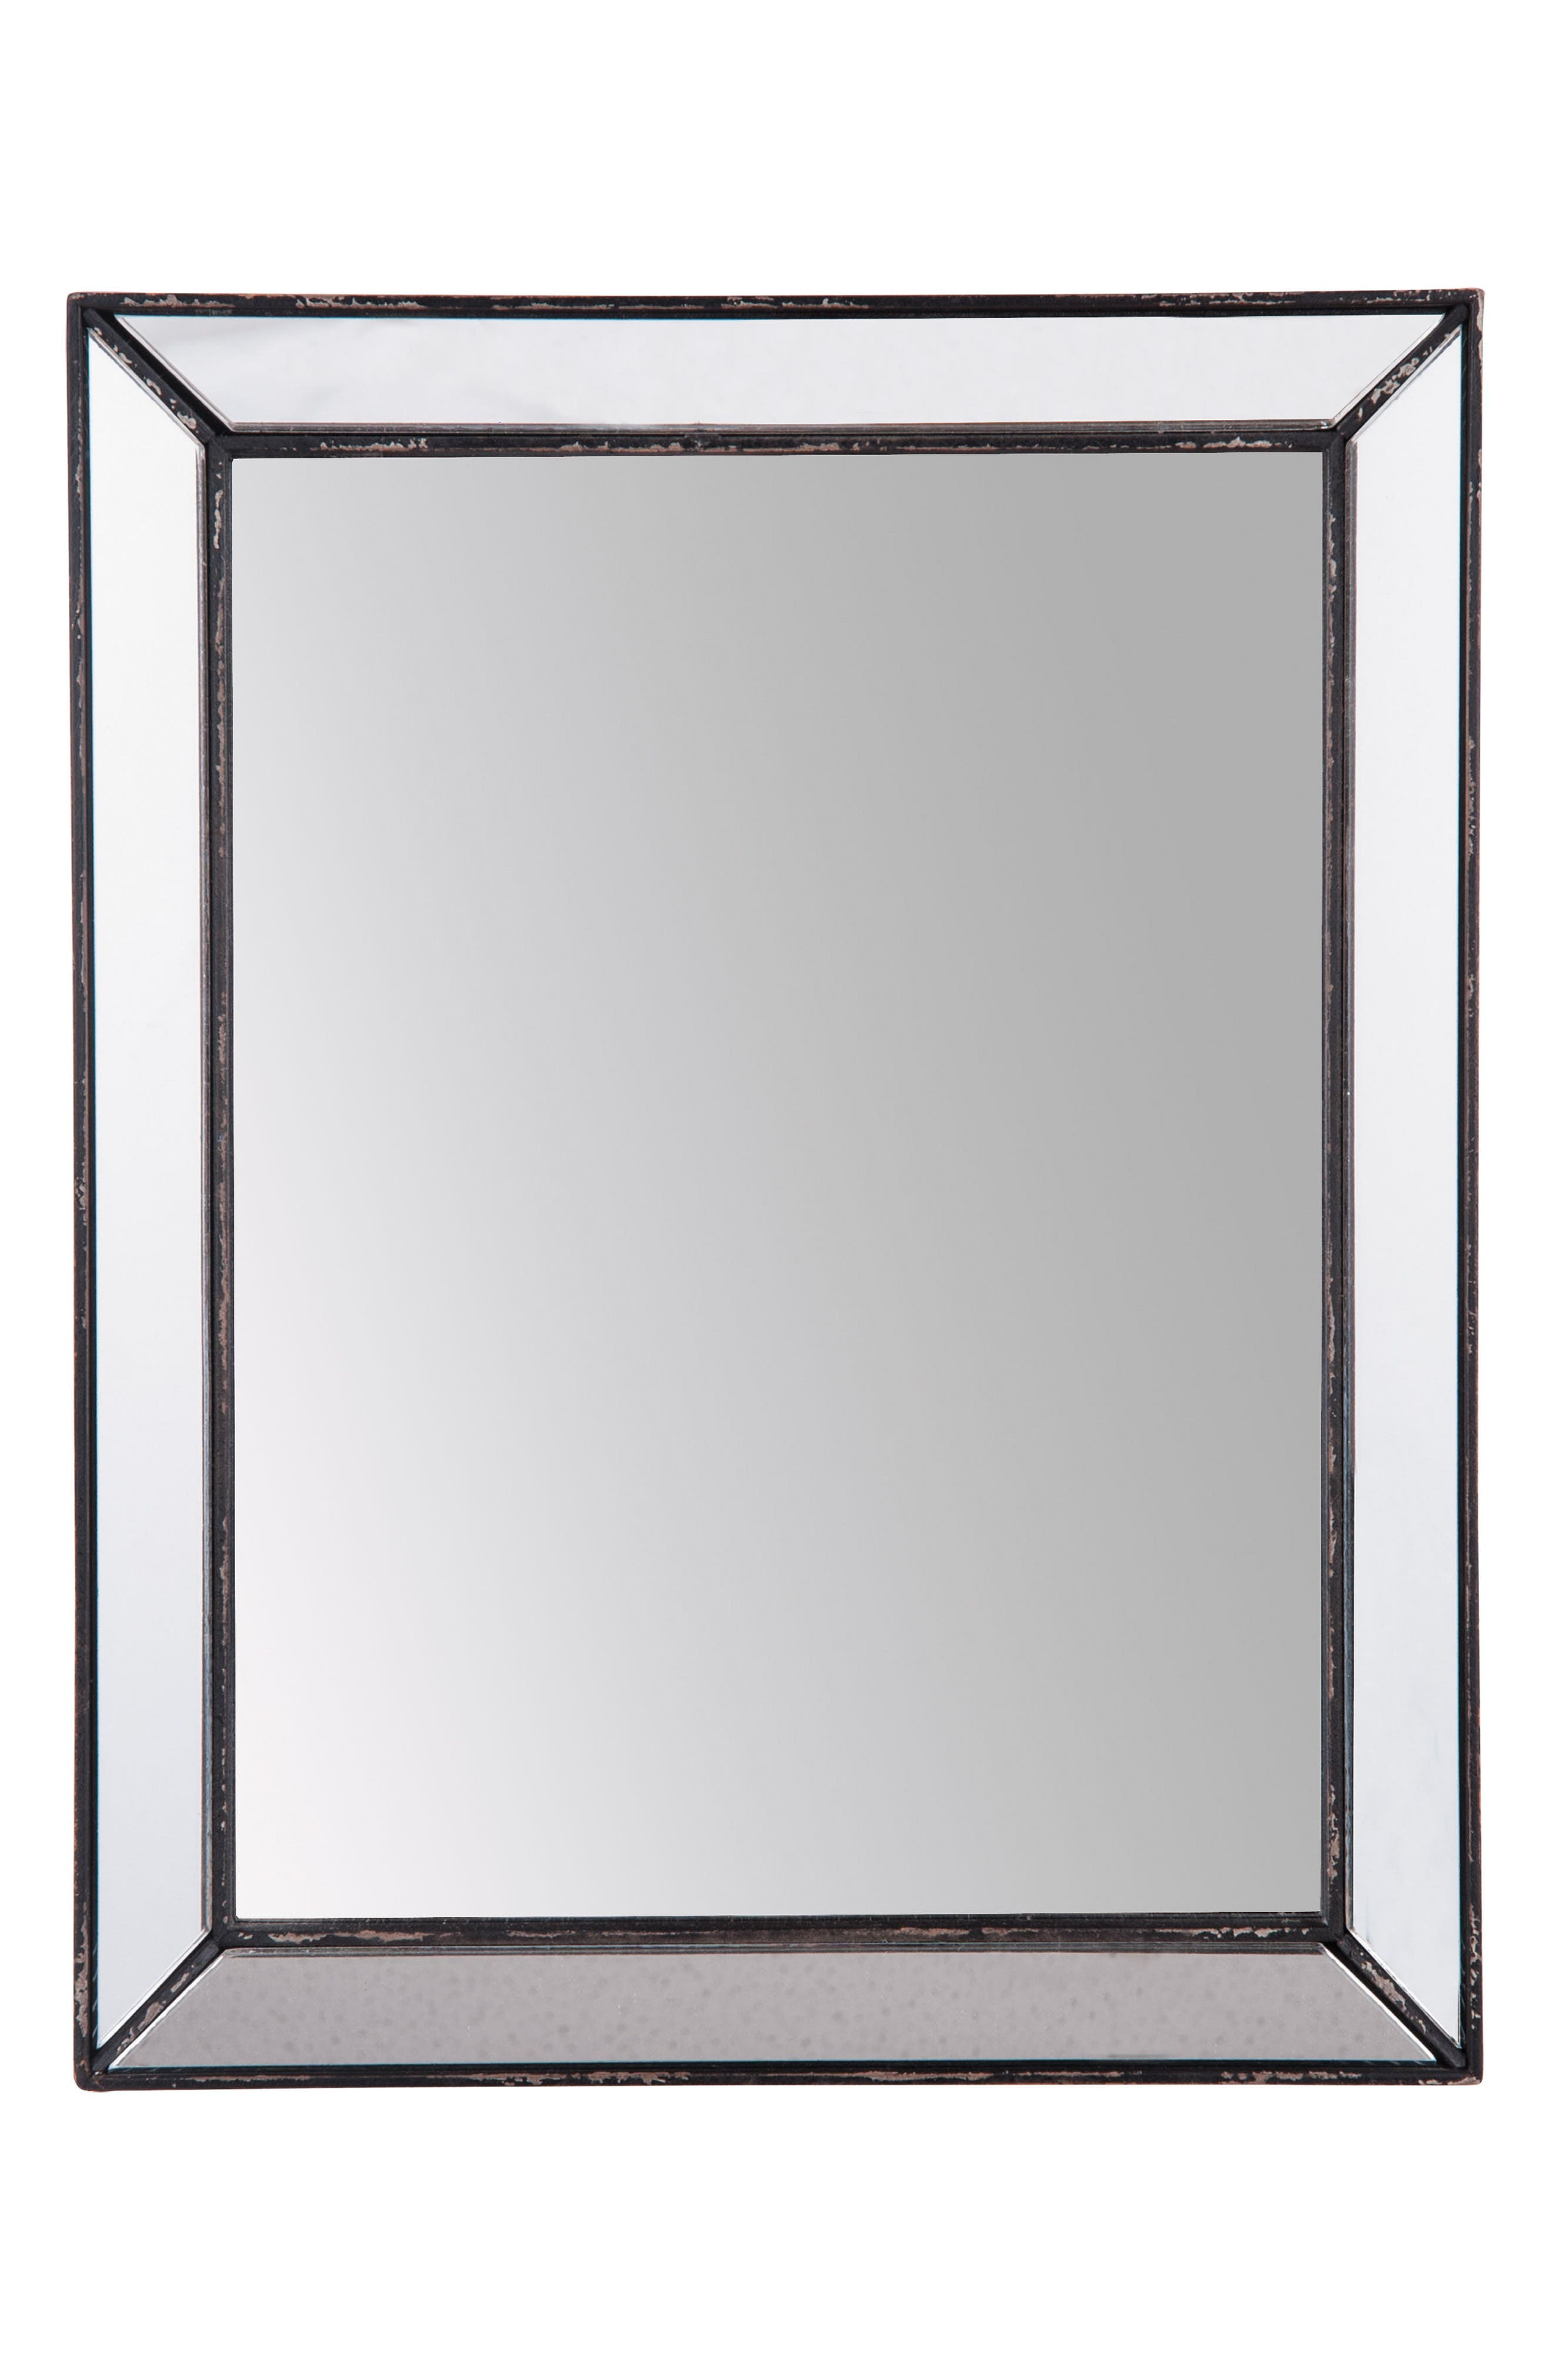 Alternate Image 1 Selected - Foreside Rectangle Mirror